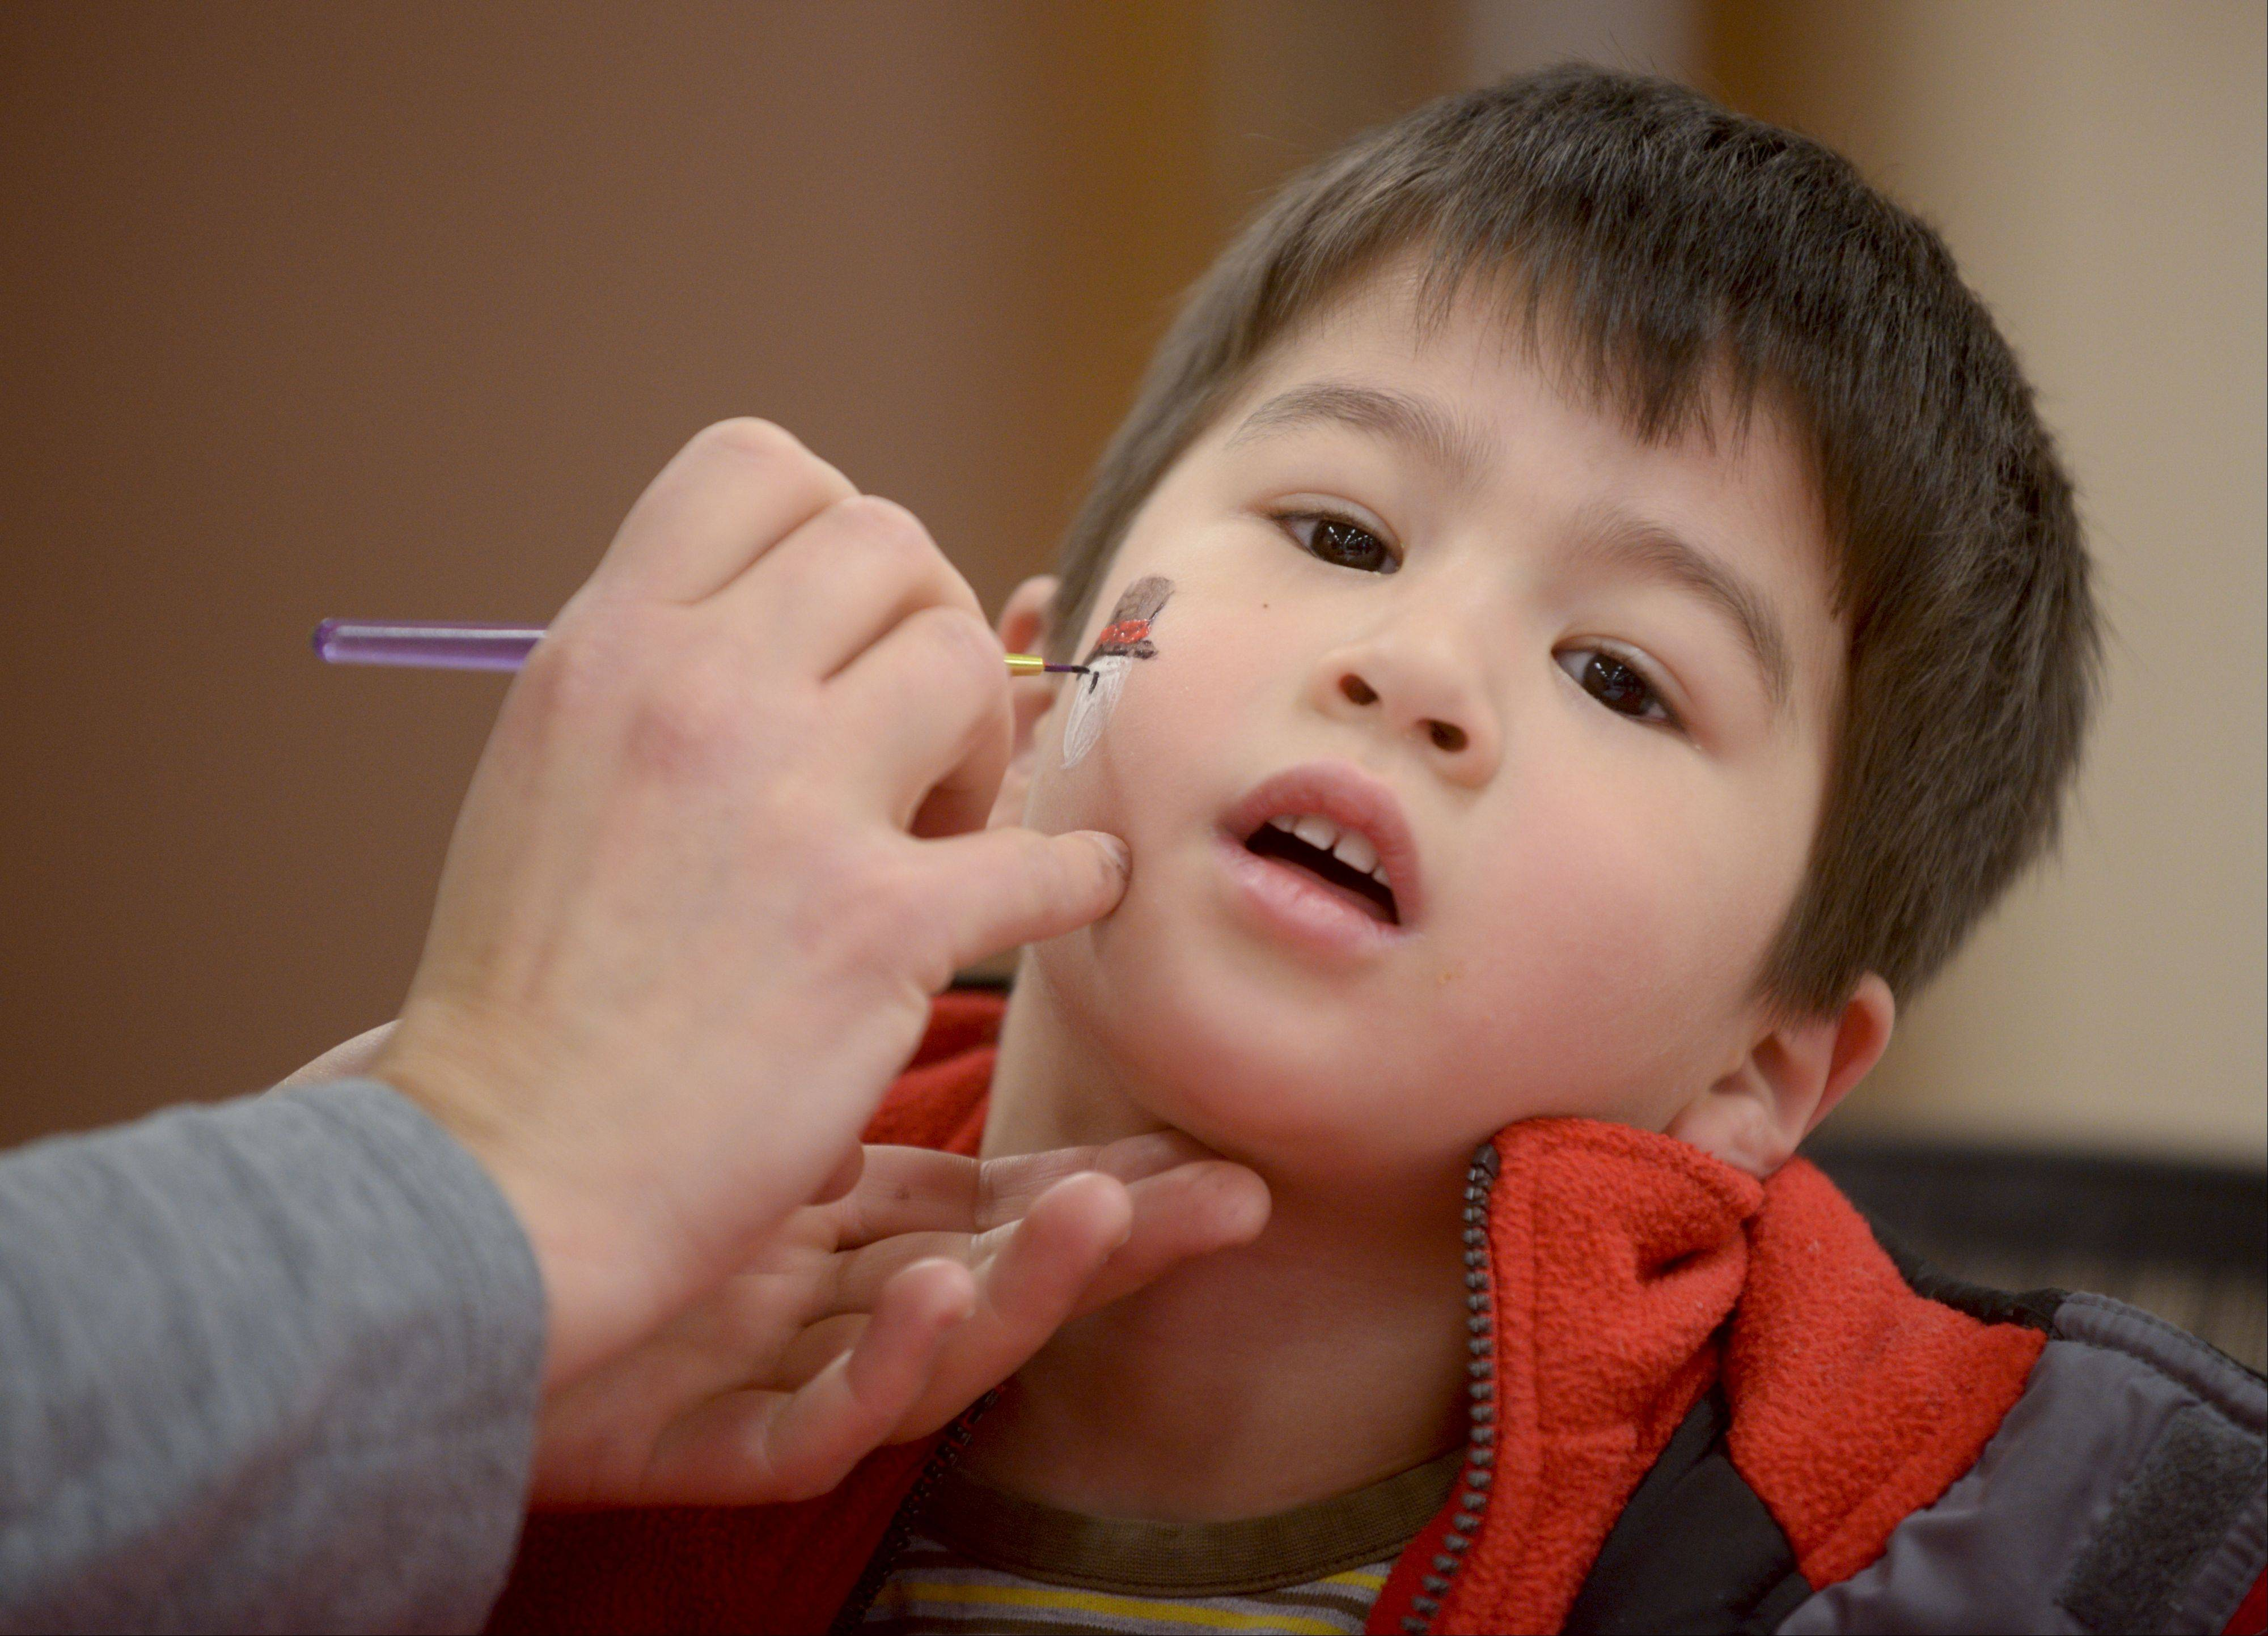 Jake Gizel, 3, of Streamwood gets a snowman painted on his face by Anna Pecoraro during the at Addison's annual WinterFEST at Community Park. The event Sunday featured winter-themed events like snow golf and marshmallow roasting, as well as indoor activities like an obstacle course and bounce house.